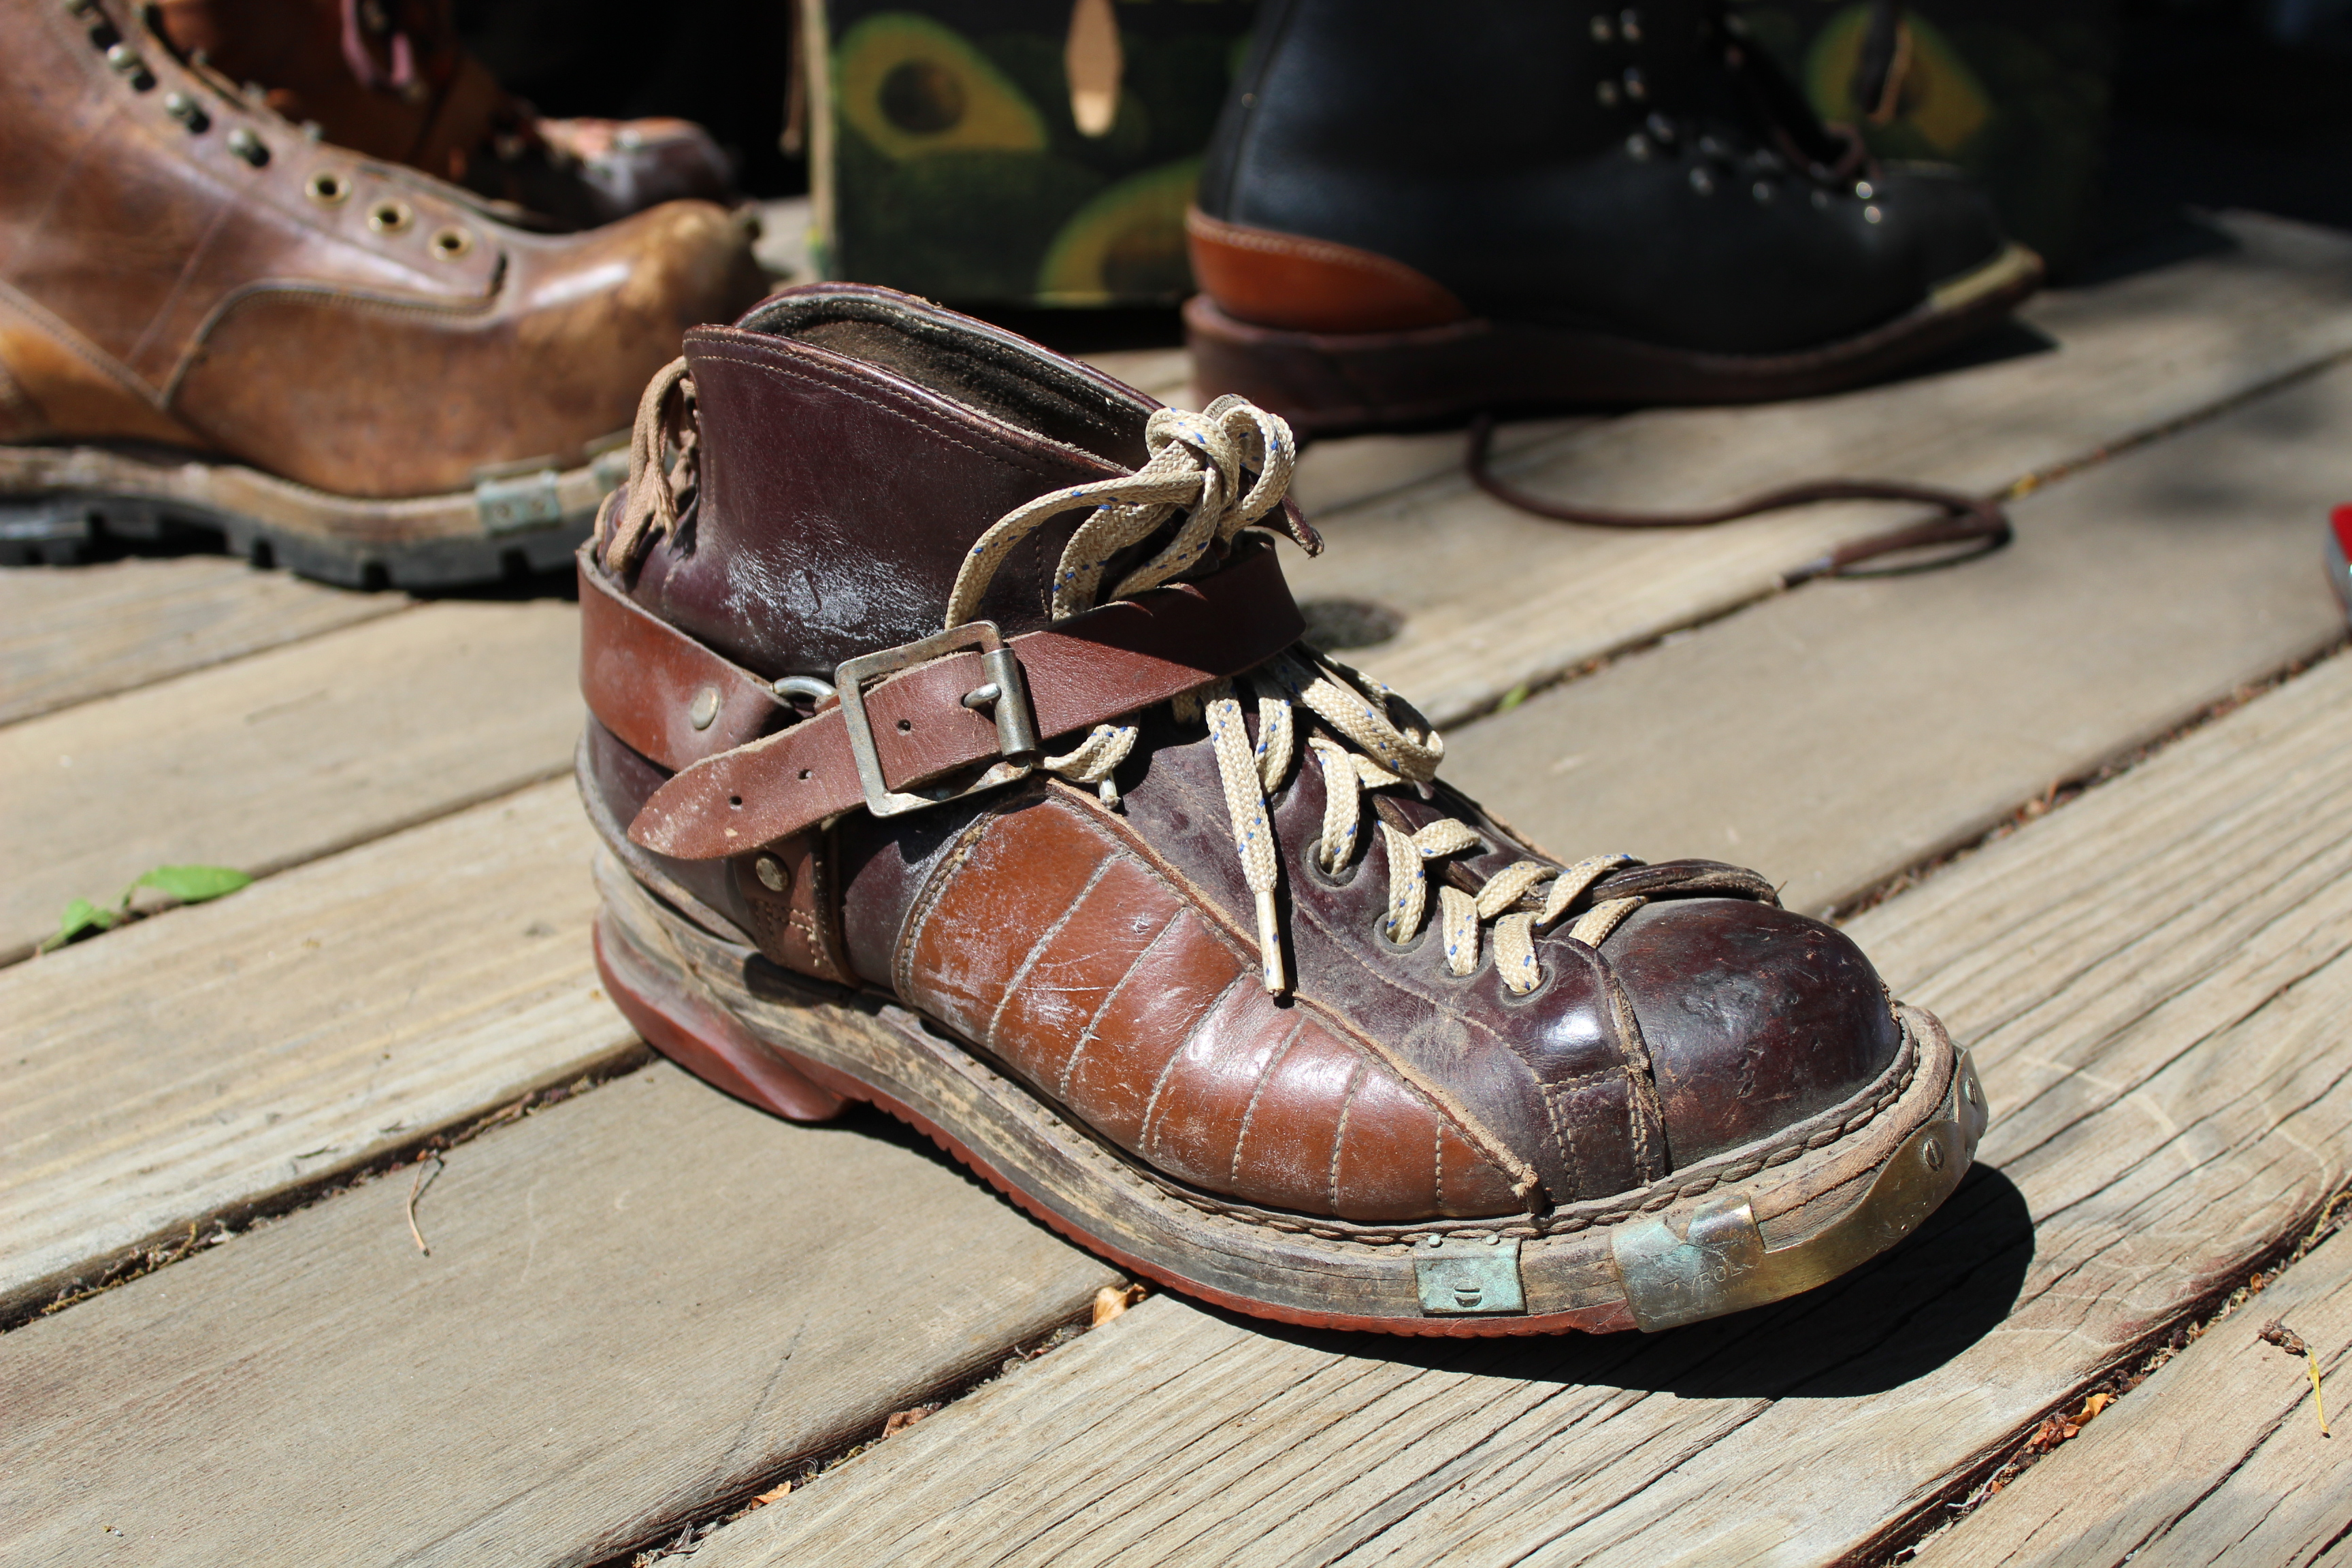 Mass-produced alpine boot with instep strap